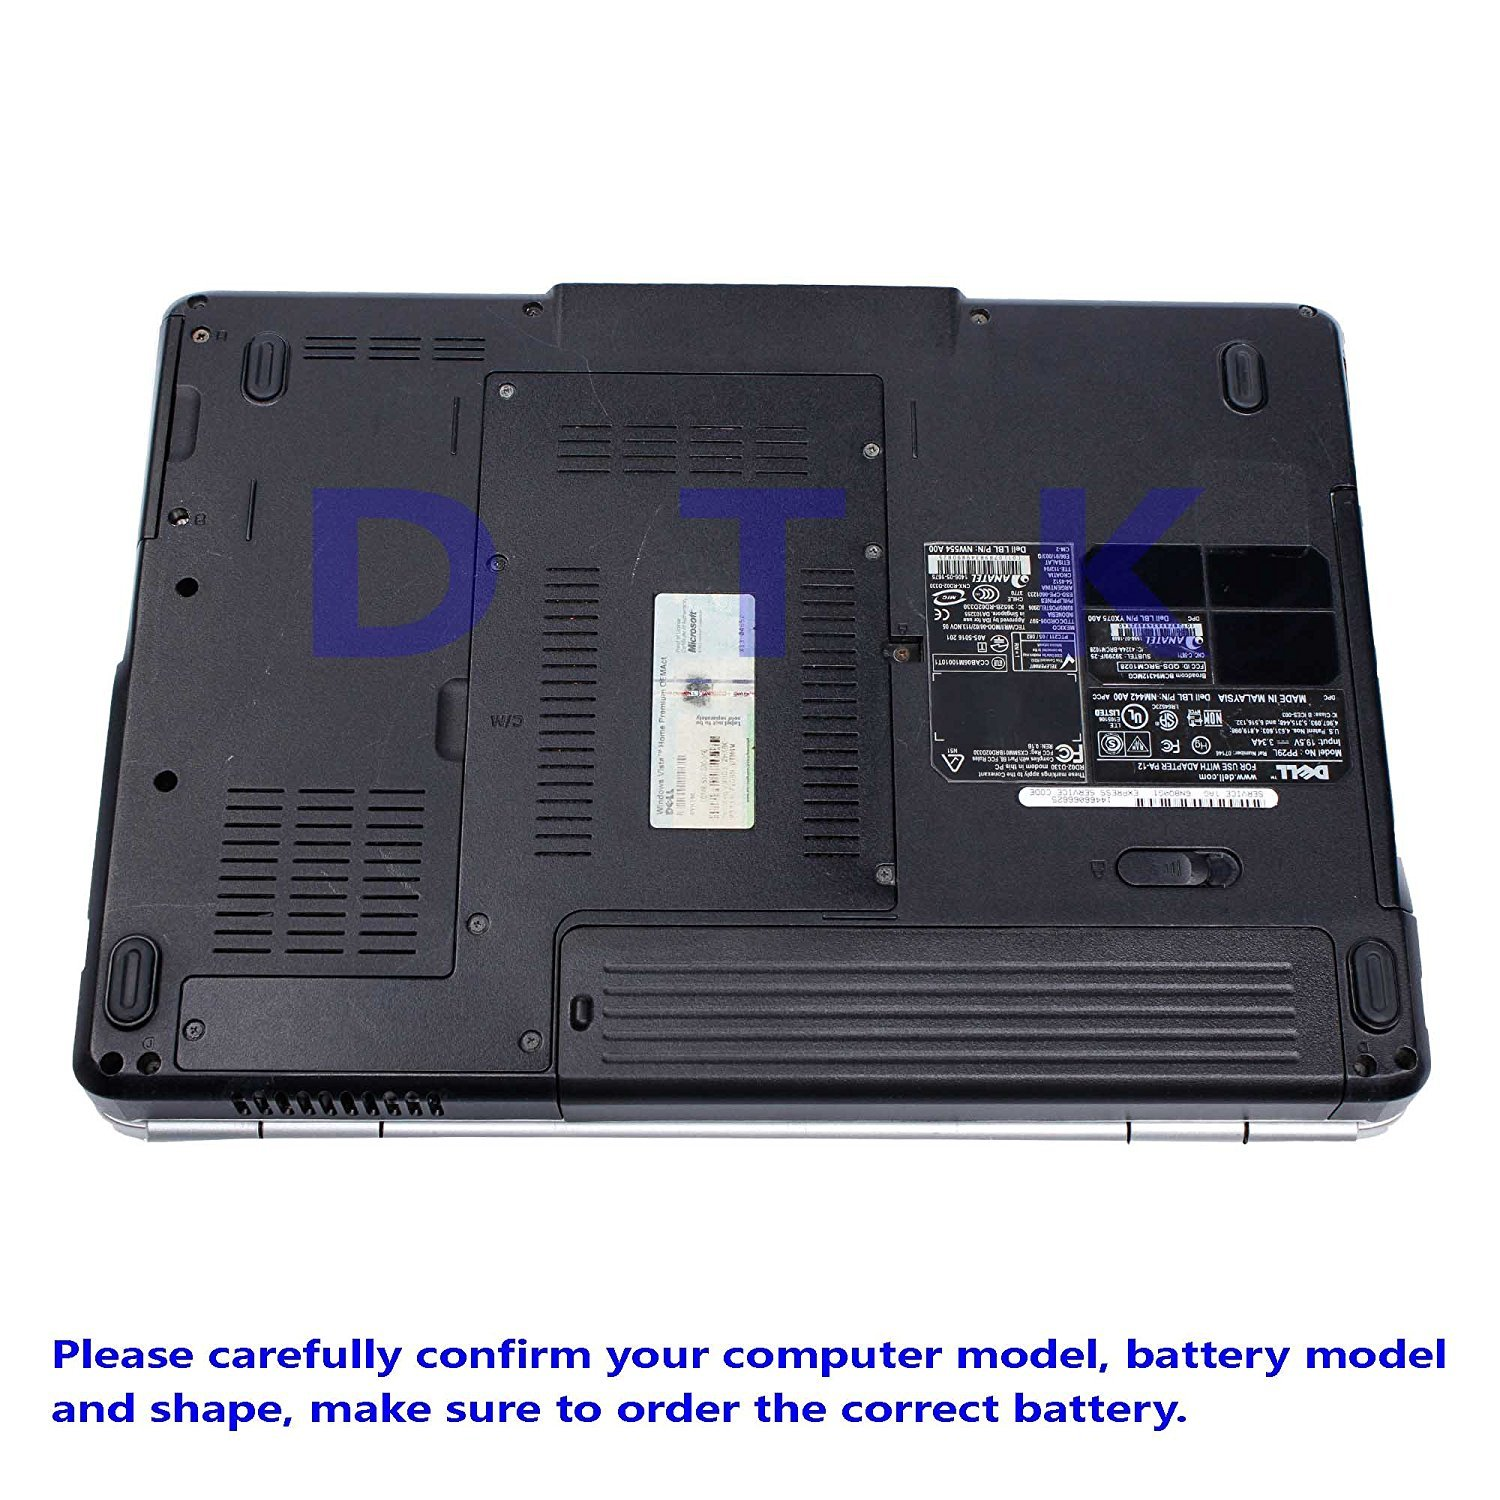 DTK® Performance Laptop Battery for DELL Inspiron 1525 1526 1545 1546 1440  1750 VOSTRO 500 K450N - 12 Months Warranty [ 6-cell 11.1V 4400mah ] Notebook  ...